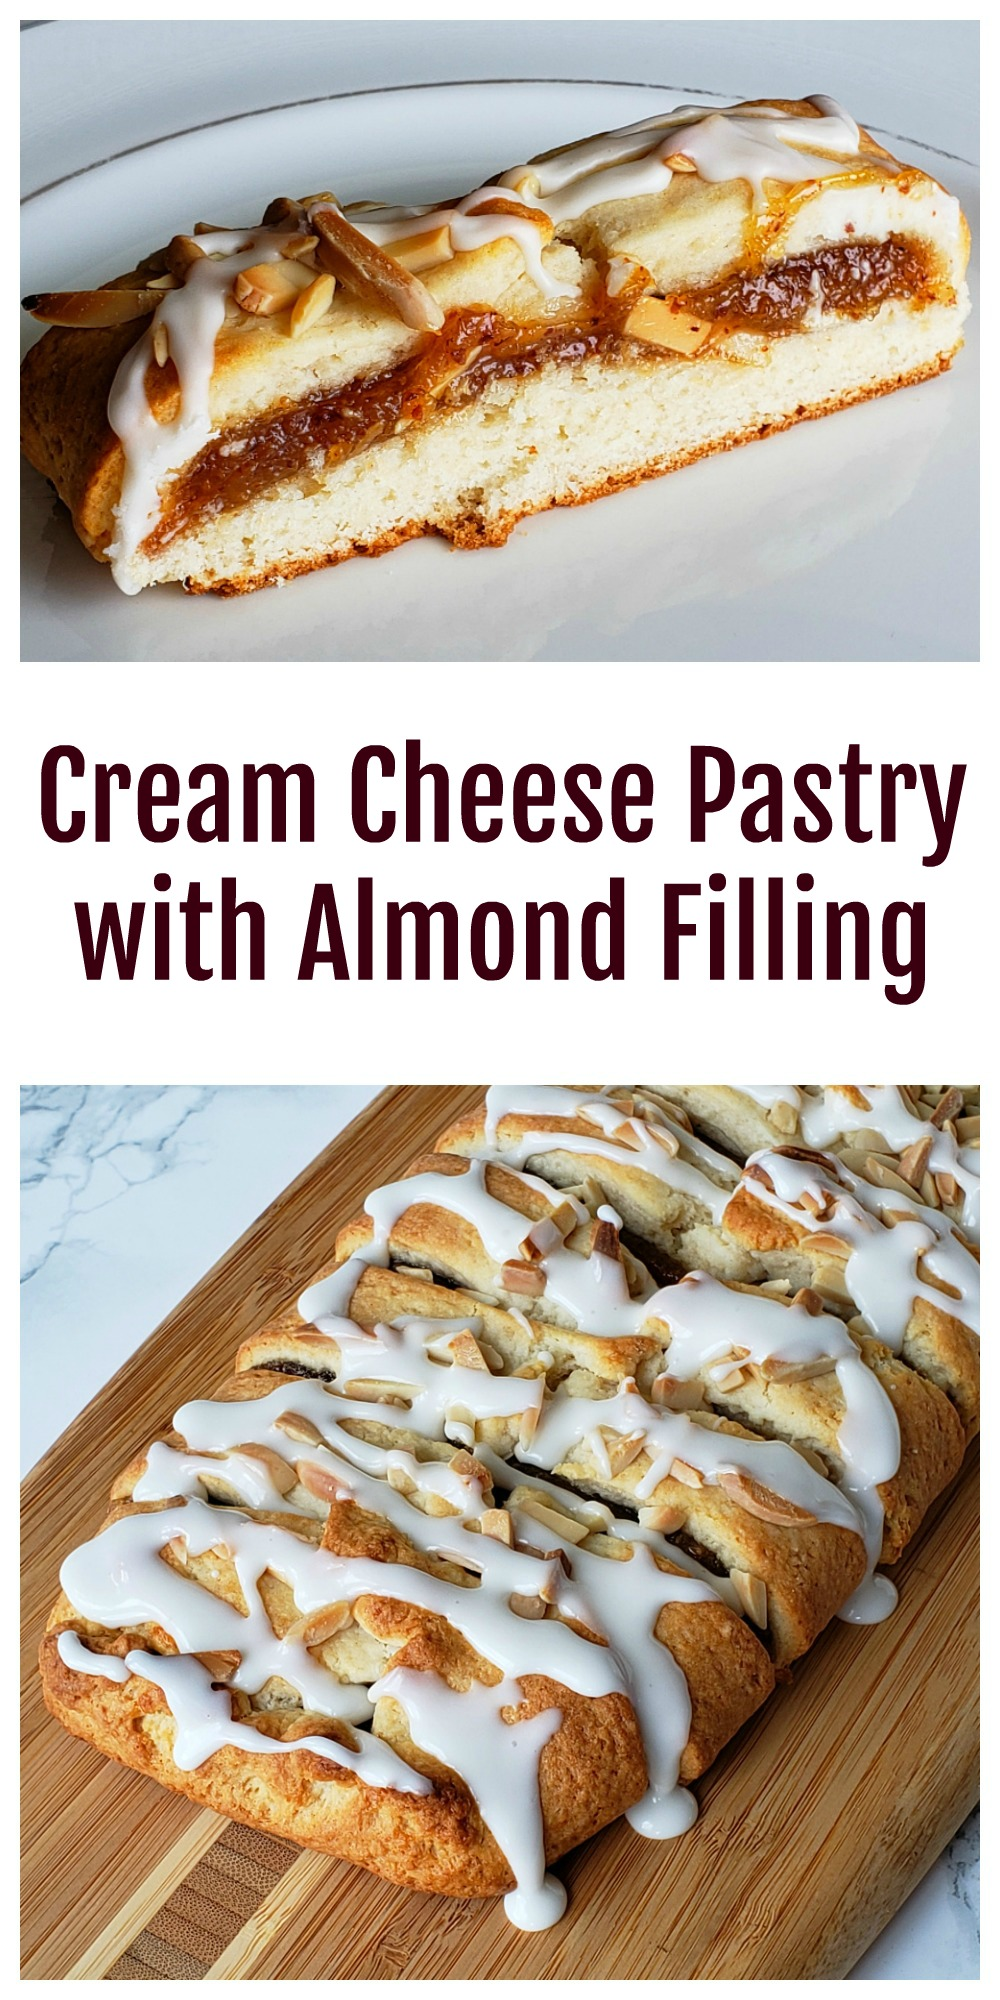 Cream Cheese Pastry with Almond Filling on ShockinglyDelicious.com